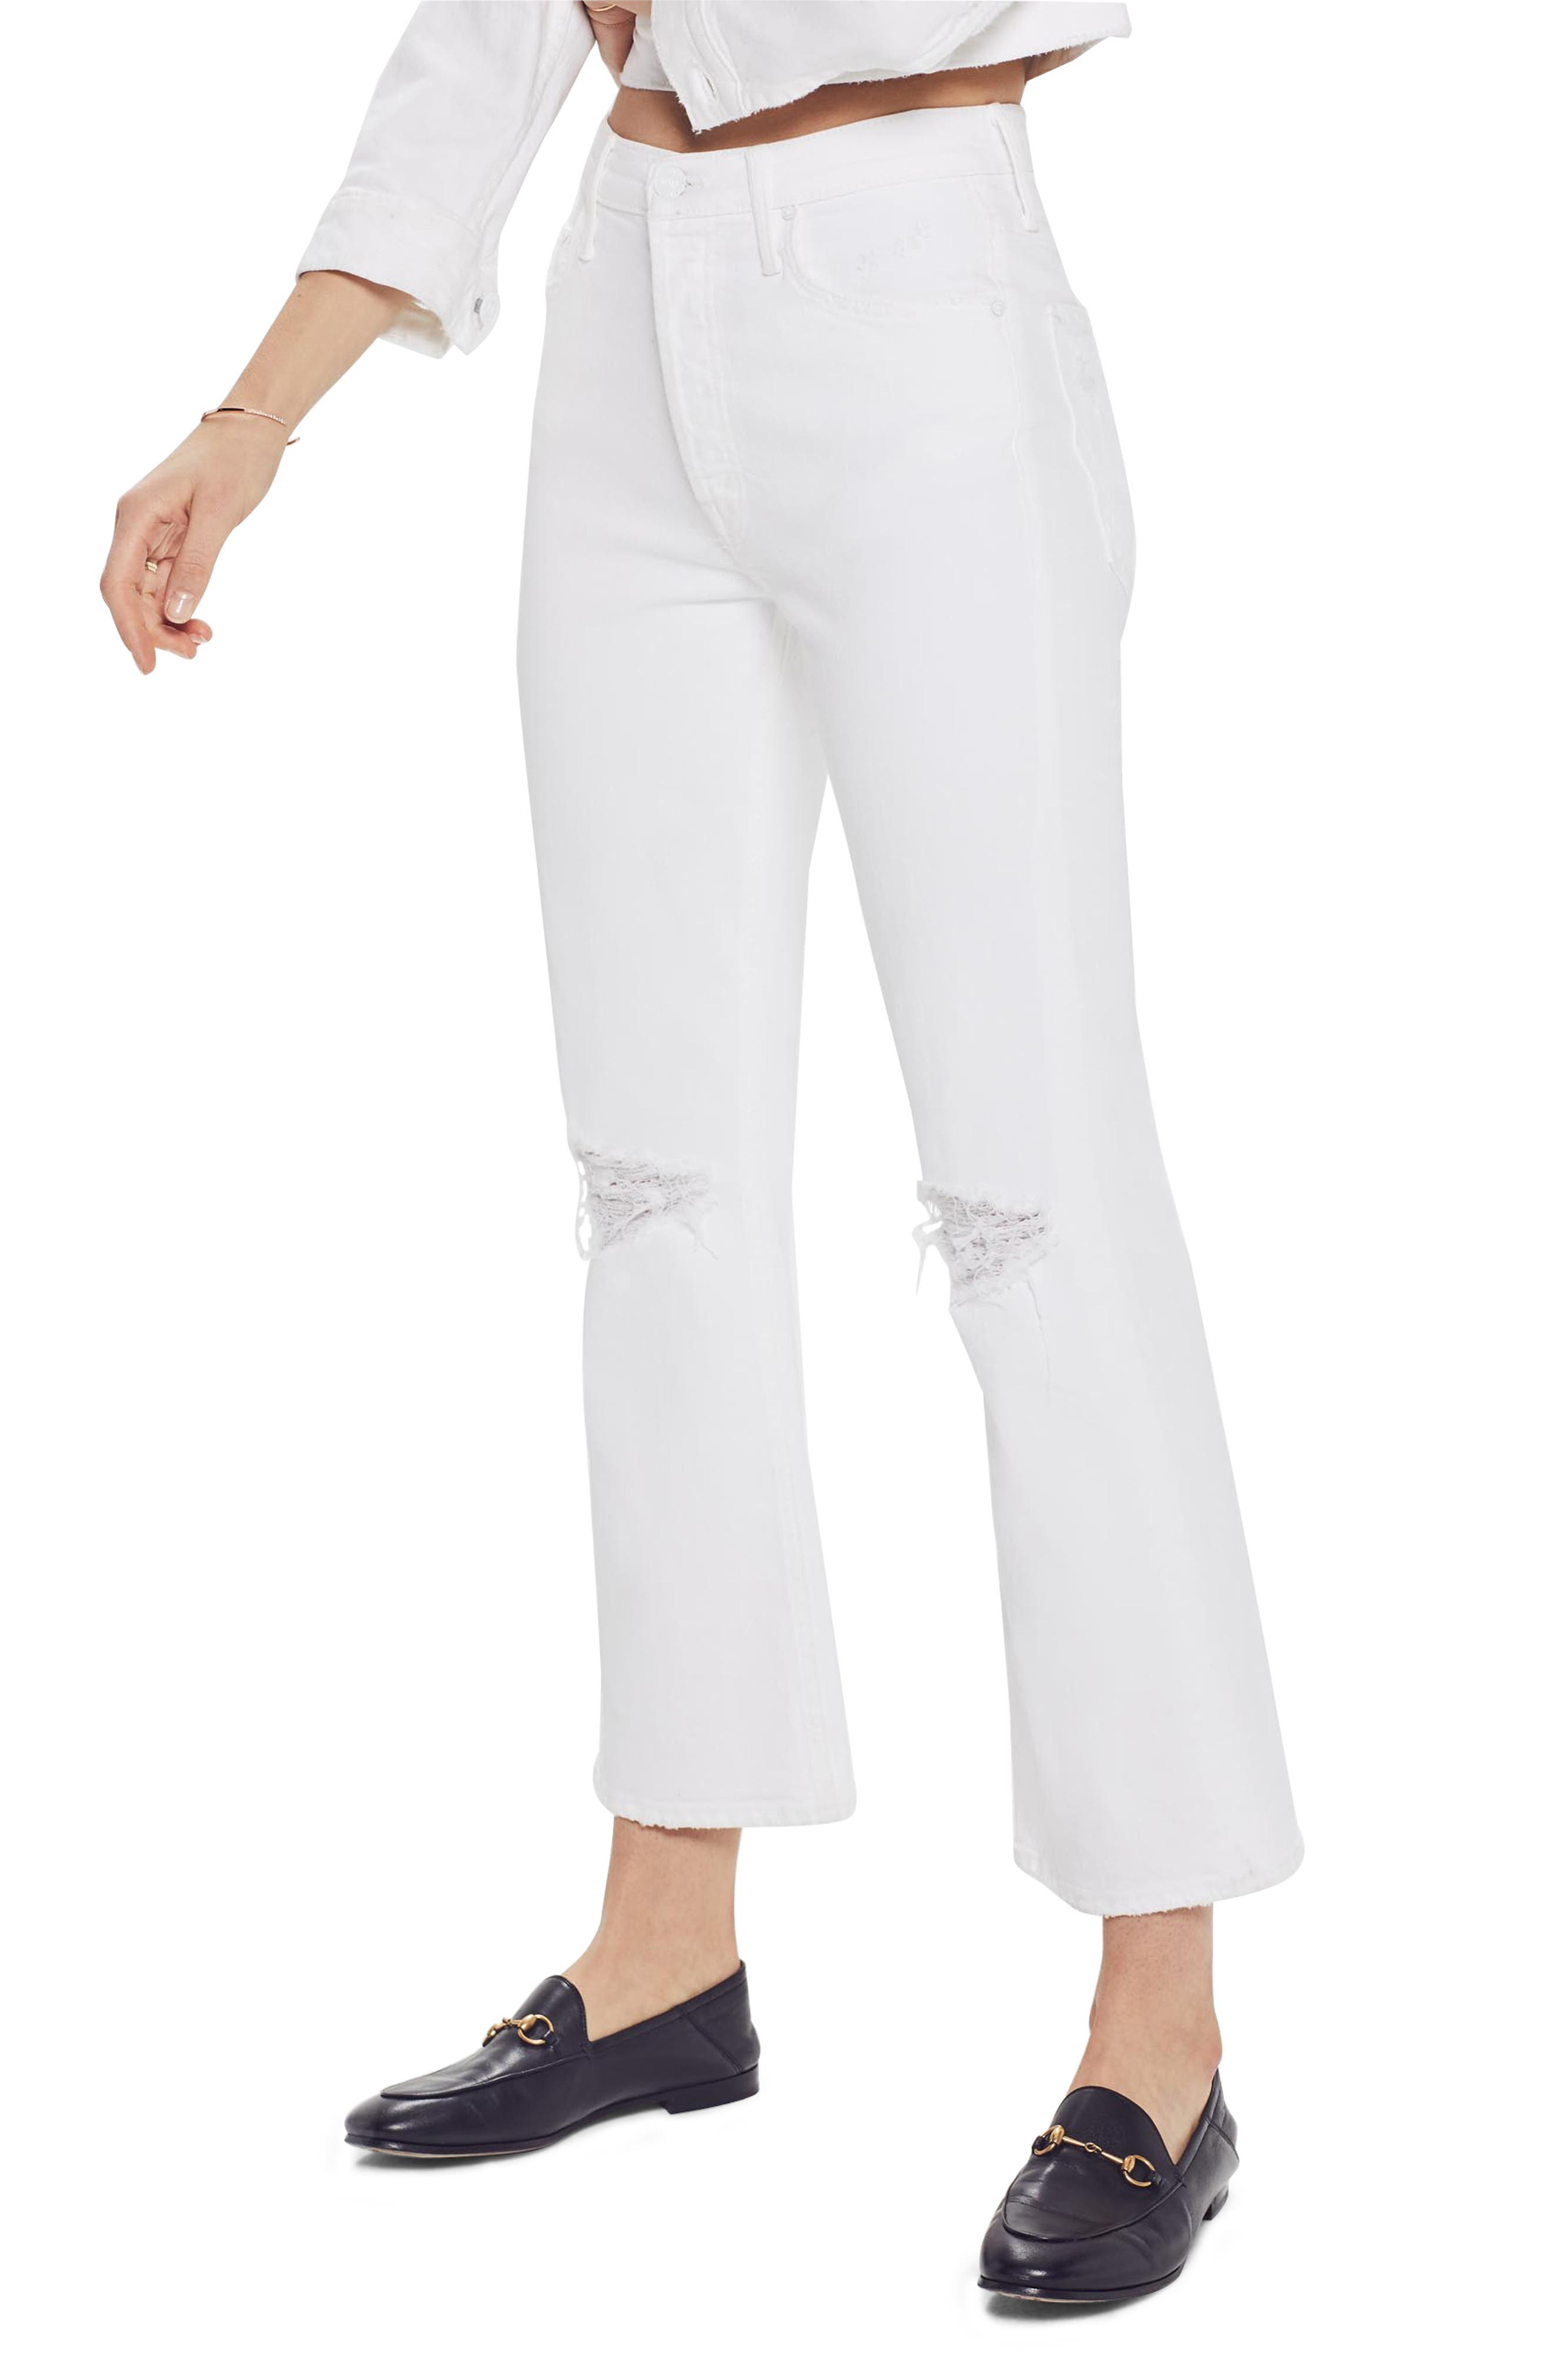 MOTHER, The Tripper High Waist Crop Bootcut Jeans, Alternate thumbnail 3, color, ALMOST INNOCENT